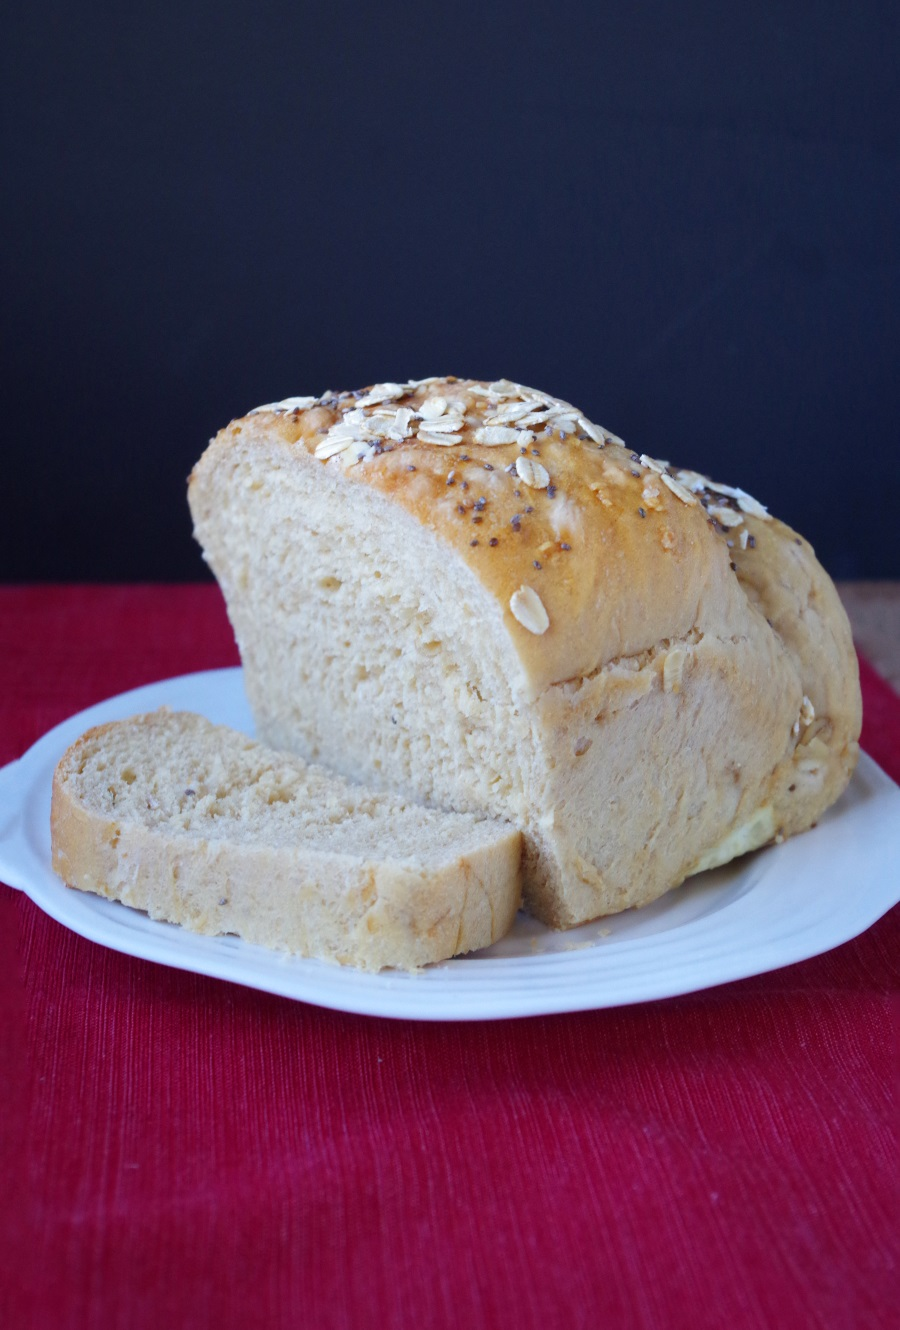 Homemade Whole Wheat Sandwich Bread Recipe - FitCakery.com